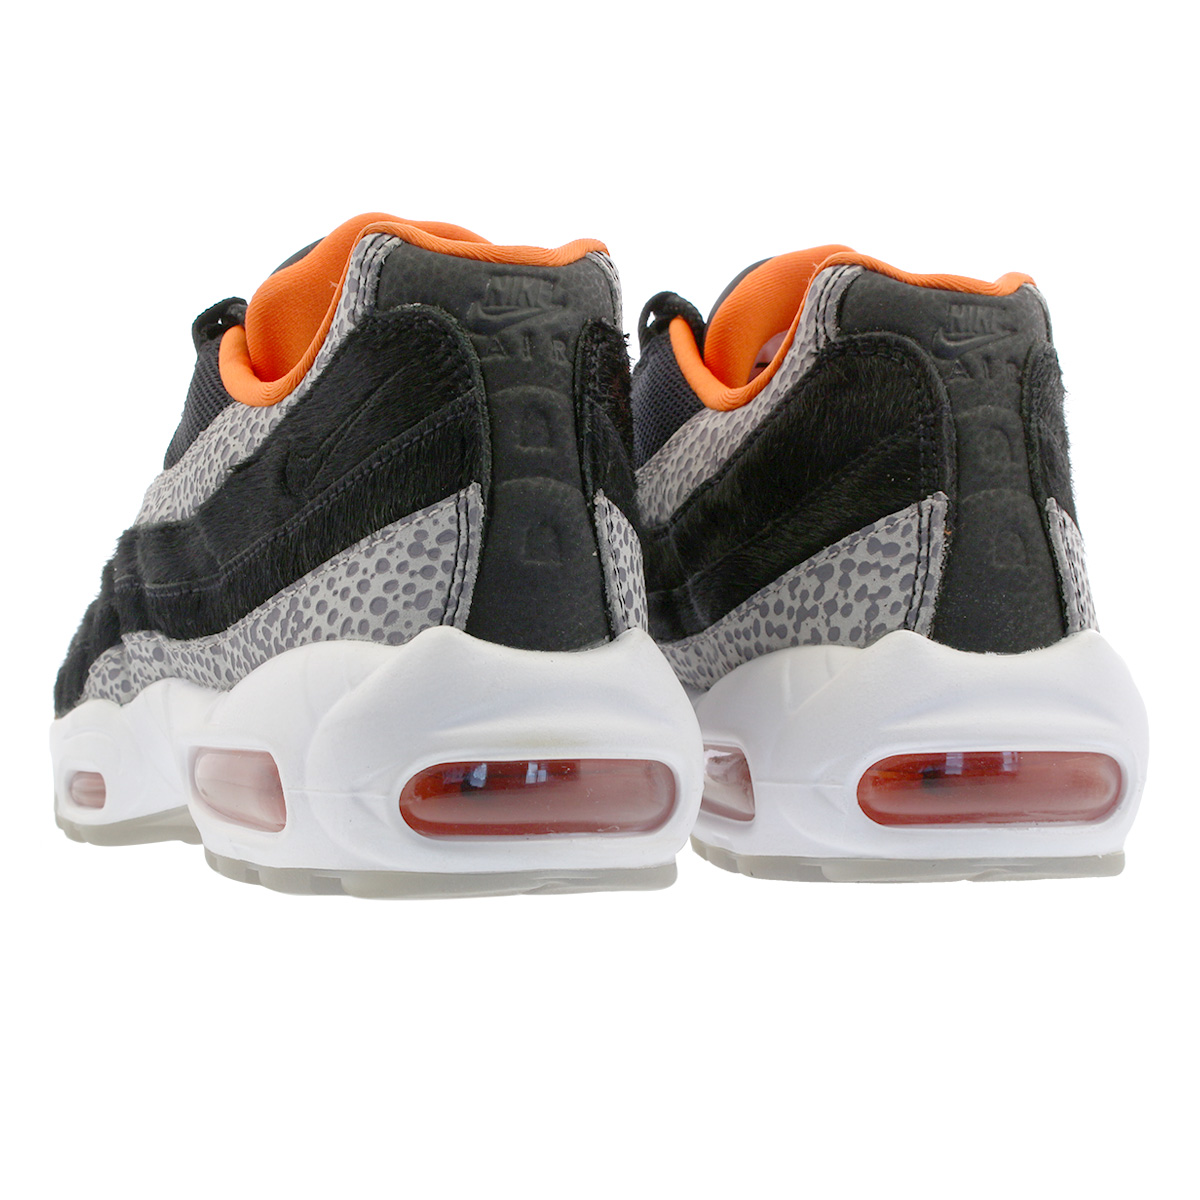 af9a230e95 ... NIKE AIR MAX 95 Kie Ney AMAX 95 CHAMPAGNE/SAFETY ORANGE/SPORT ROYAL  av7014 ...